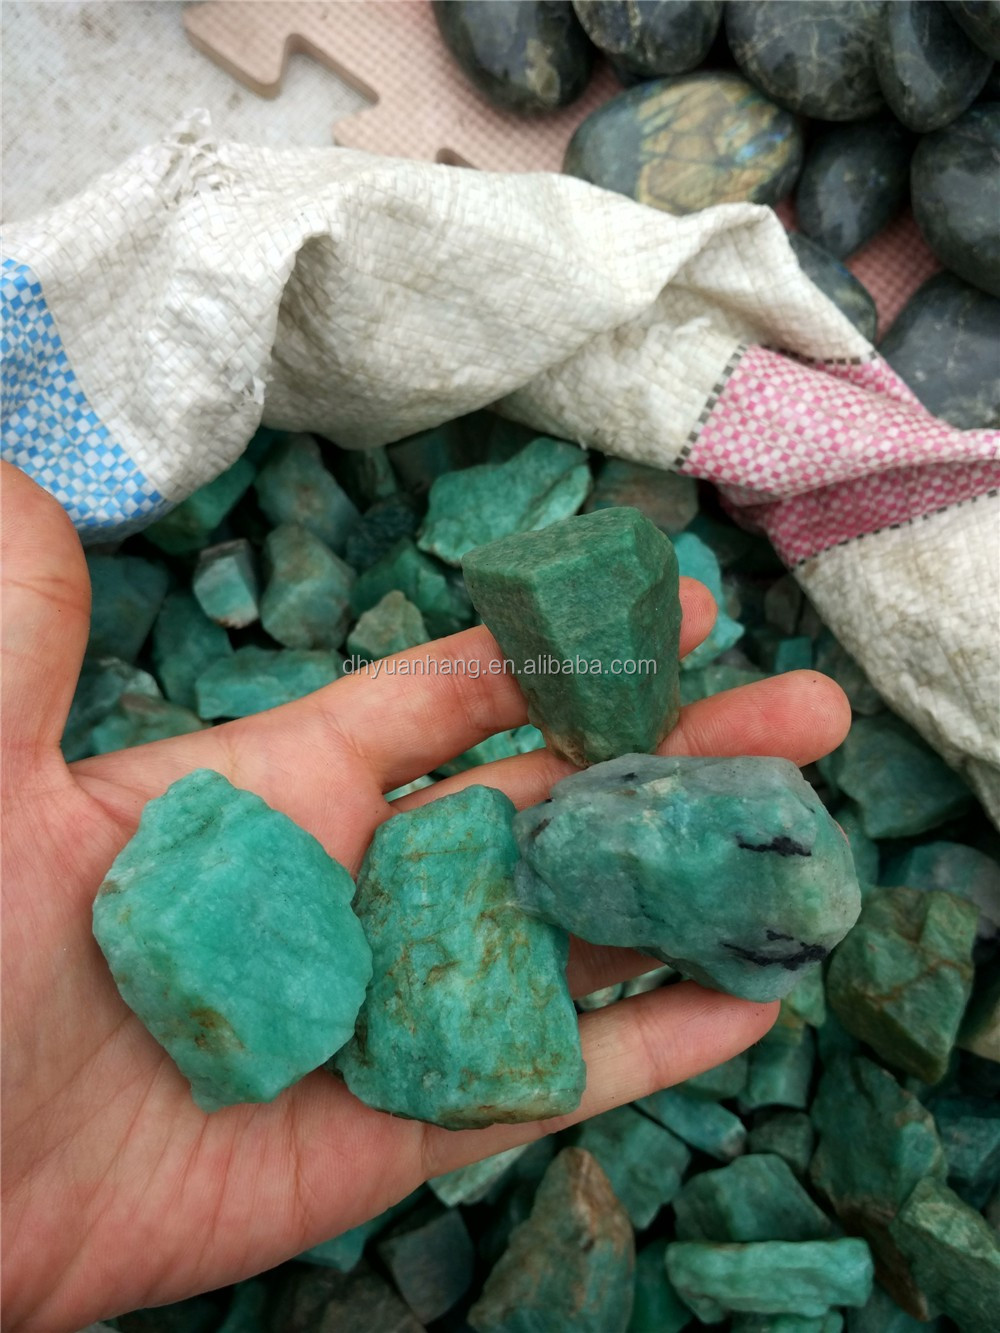 Wholesale natural raw Amazon rough stones ,green crystal stone for carvings